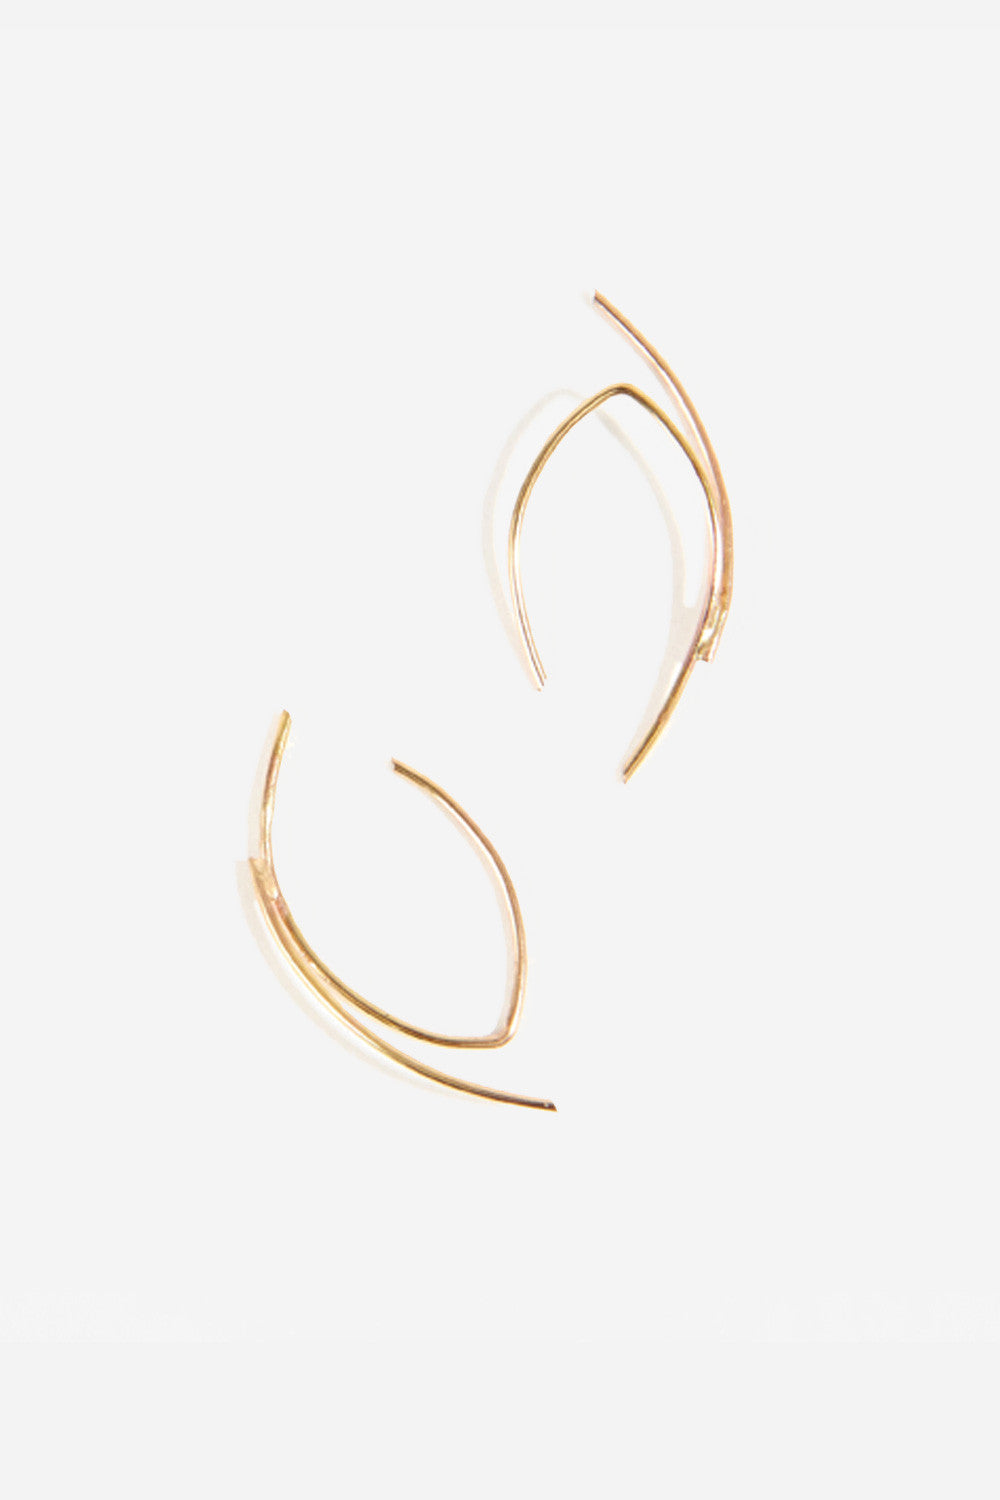 MAU V Slip On Earrings - Primary New York